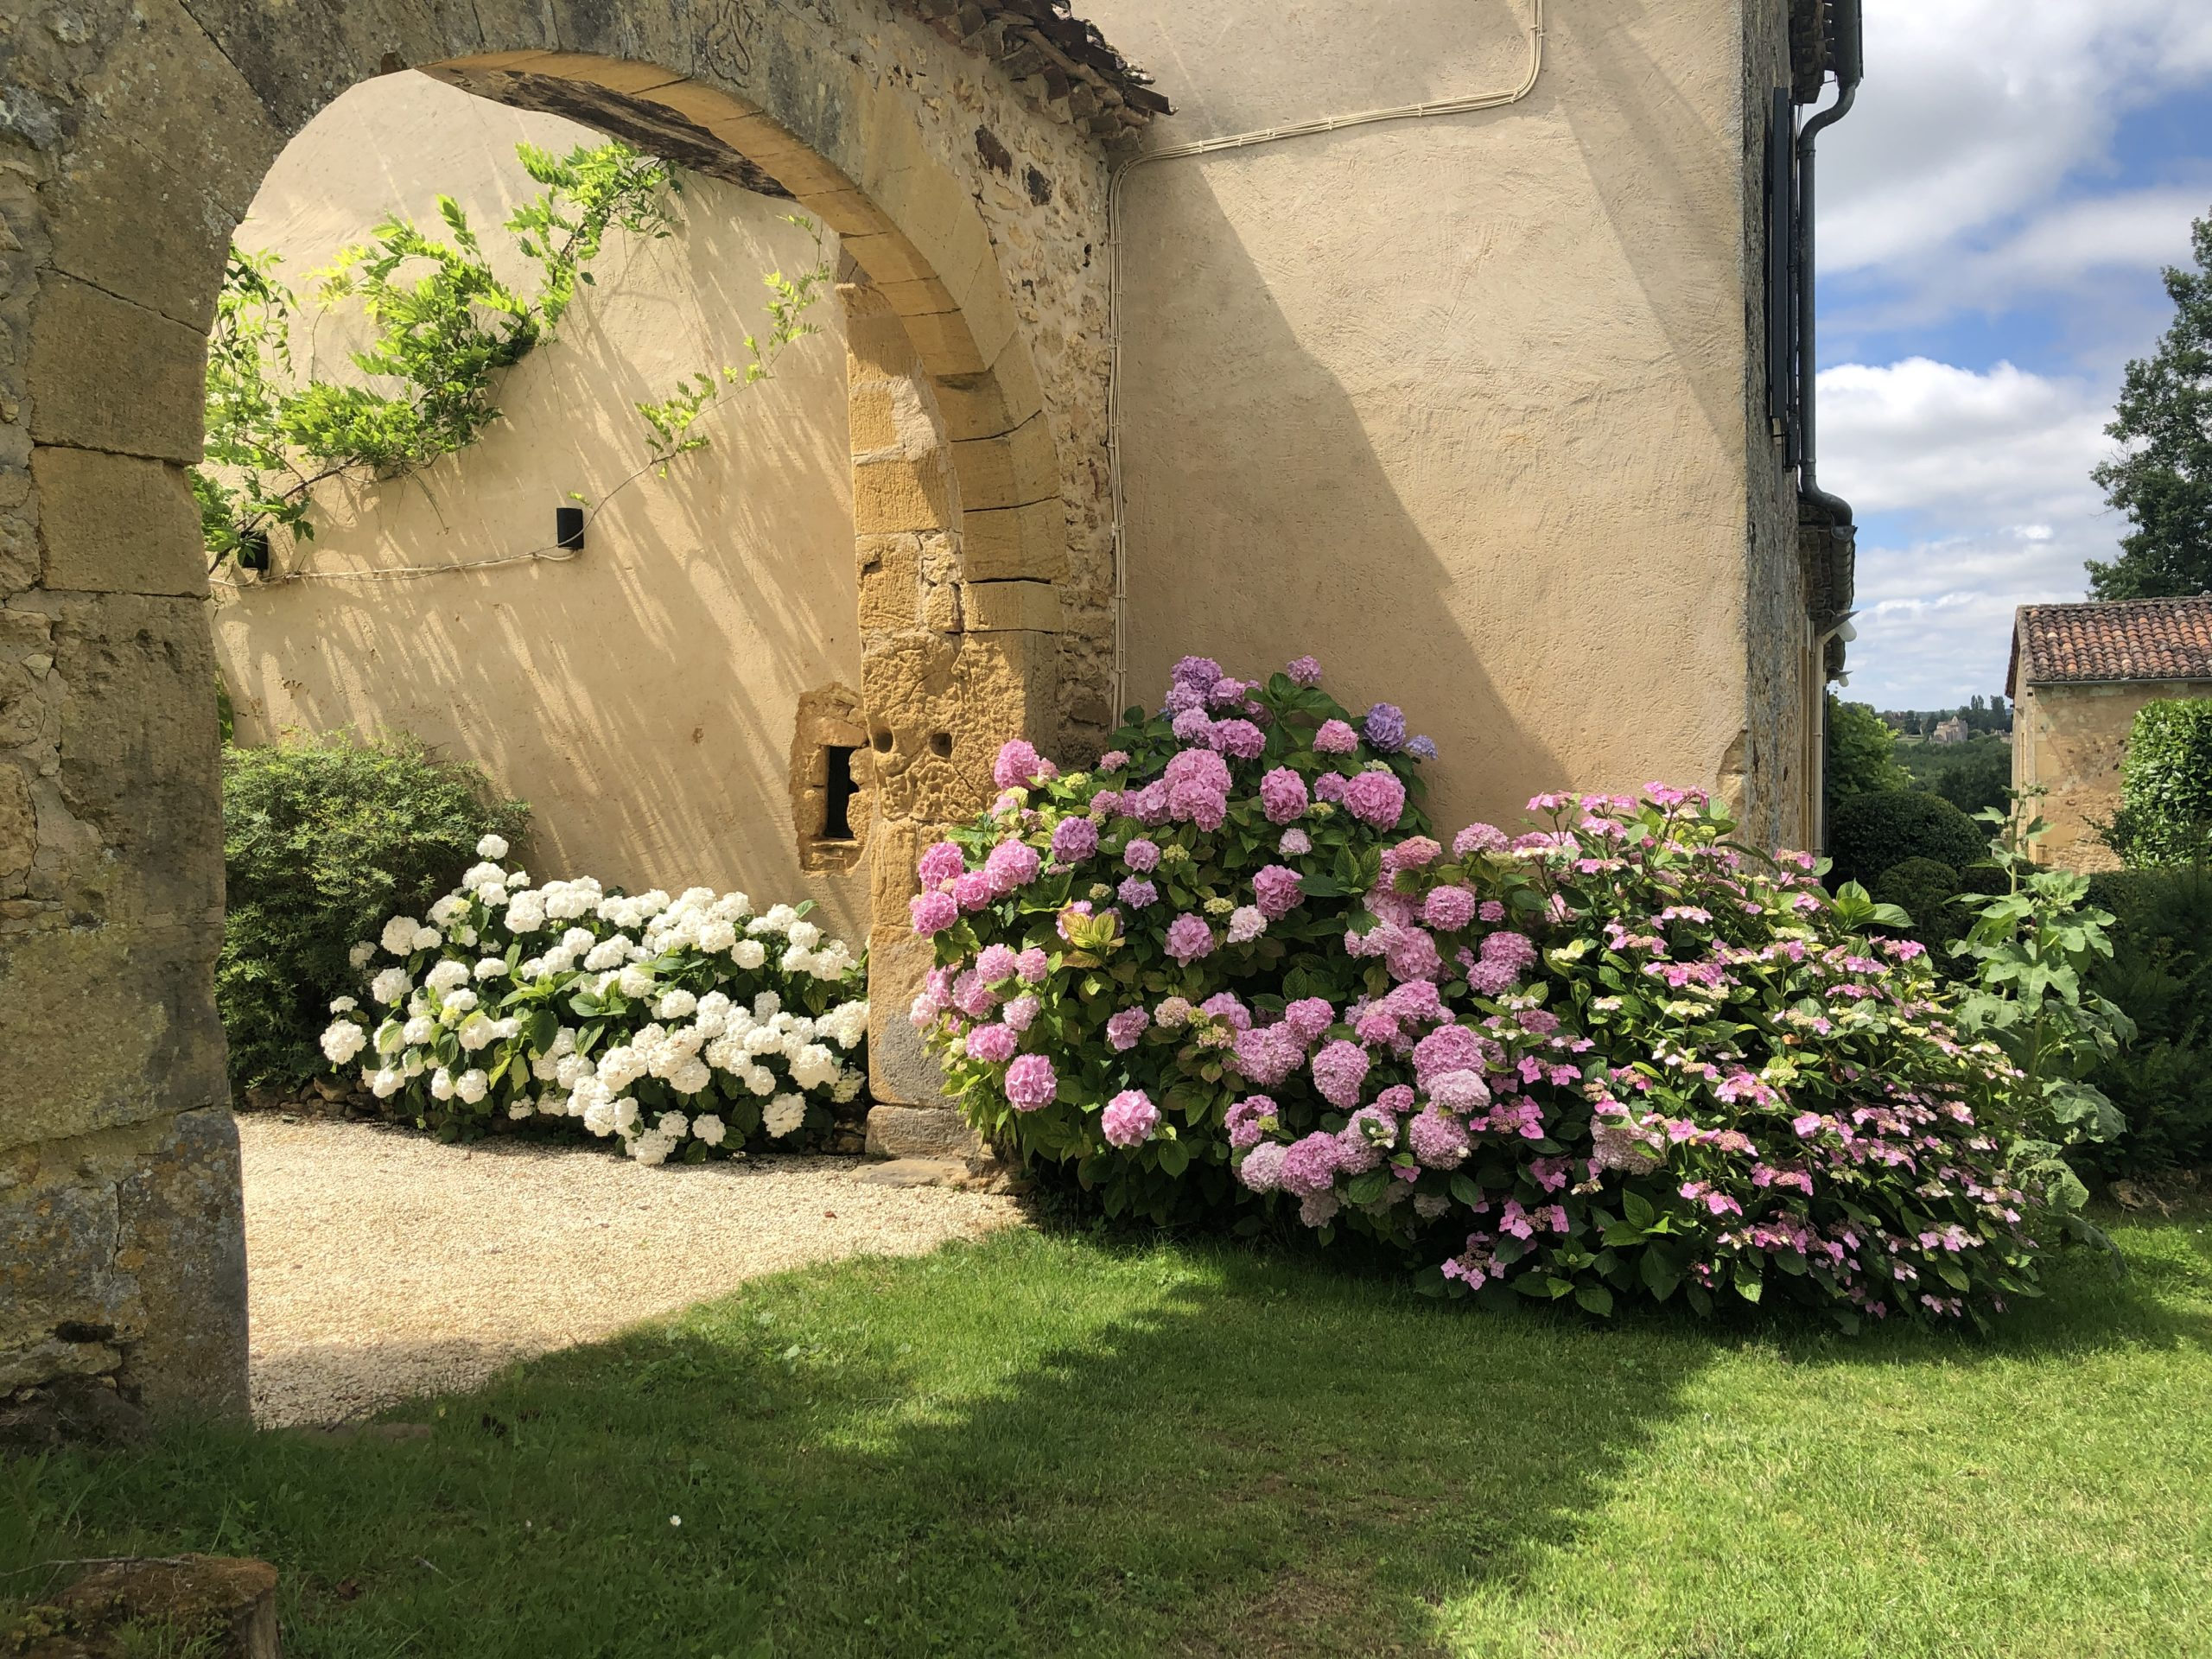 Luxury holiday accommodation in the Dordogne with pink and white hydrangea growing either side of a stone arch